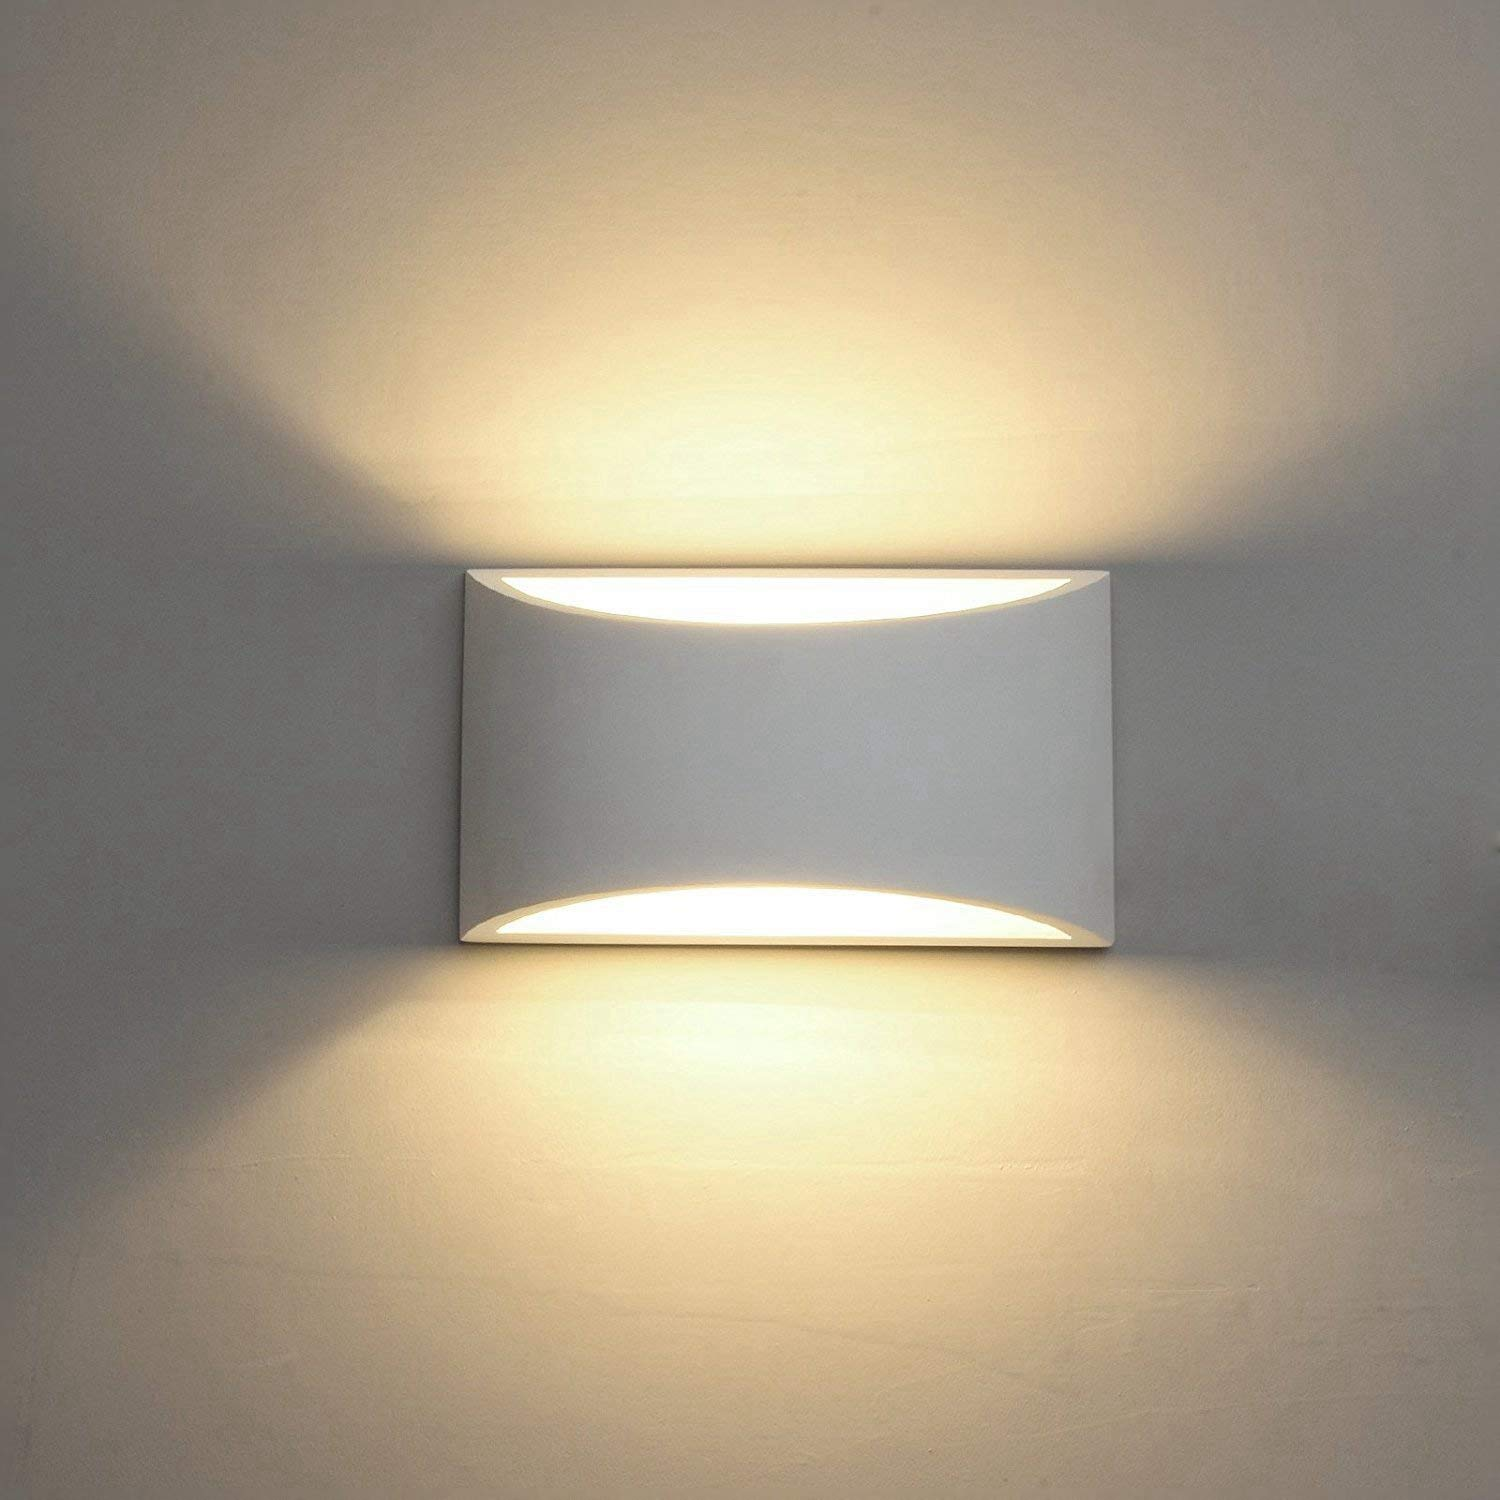 Details about modern led wall sconce lighting fixture lamps 7w warm white 2700k up and down